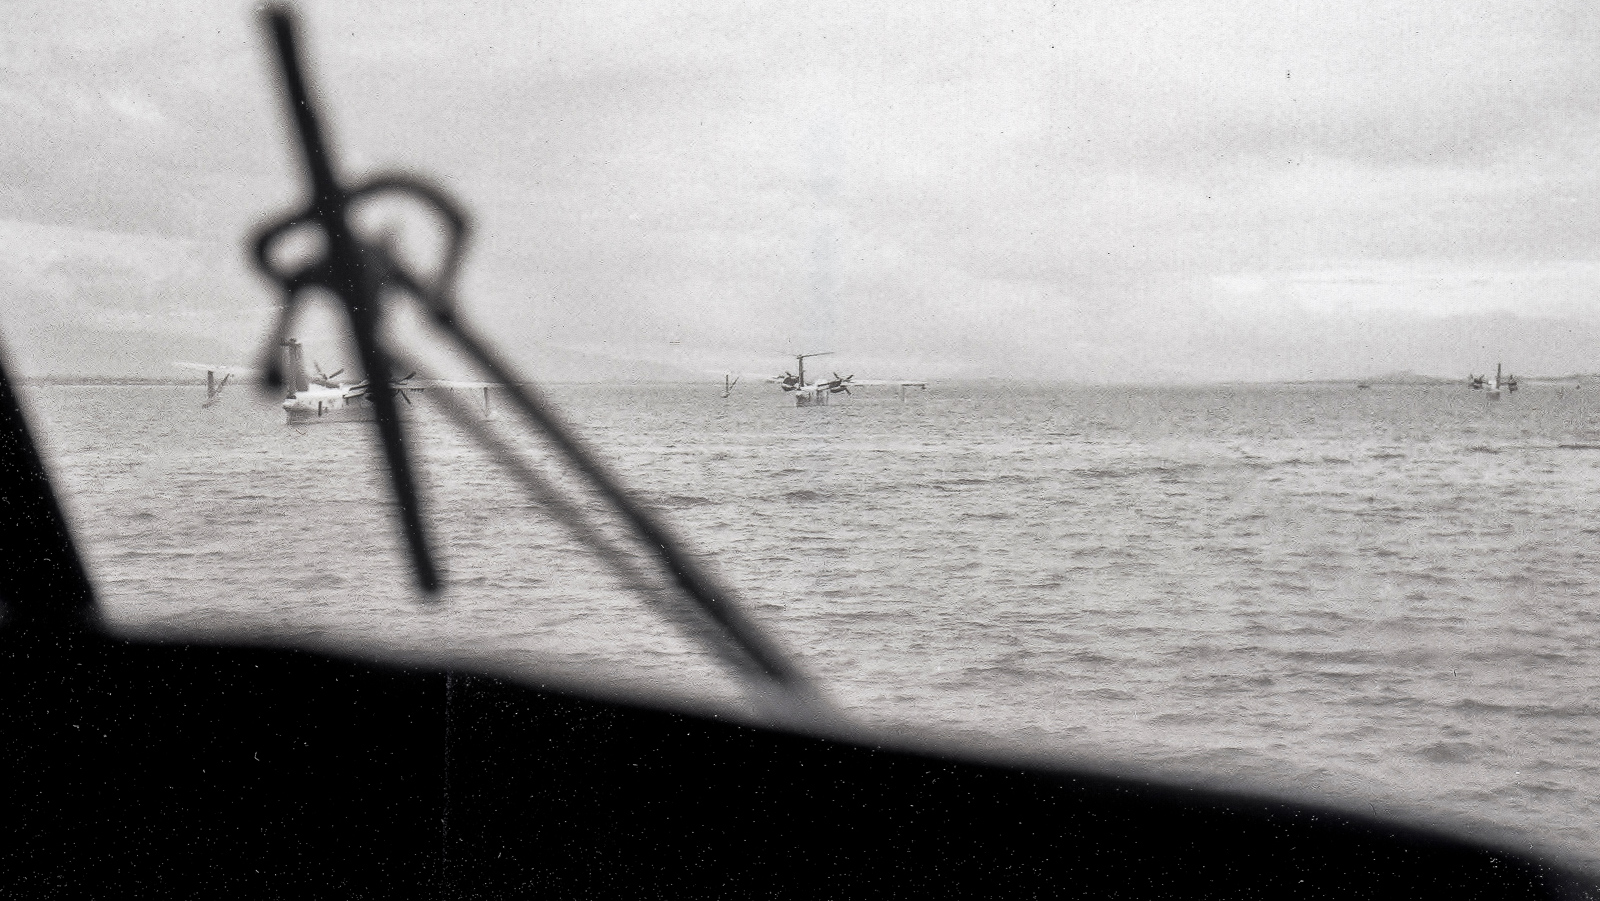 Marlins at anchor in Cam Ranh Bay as seen through the windshield of another SP-5B. (photo by Raymond T. West)